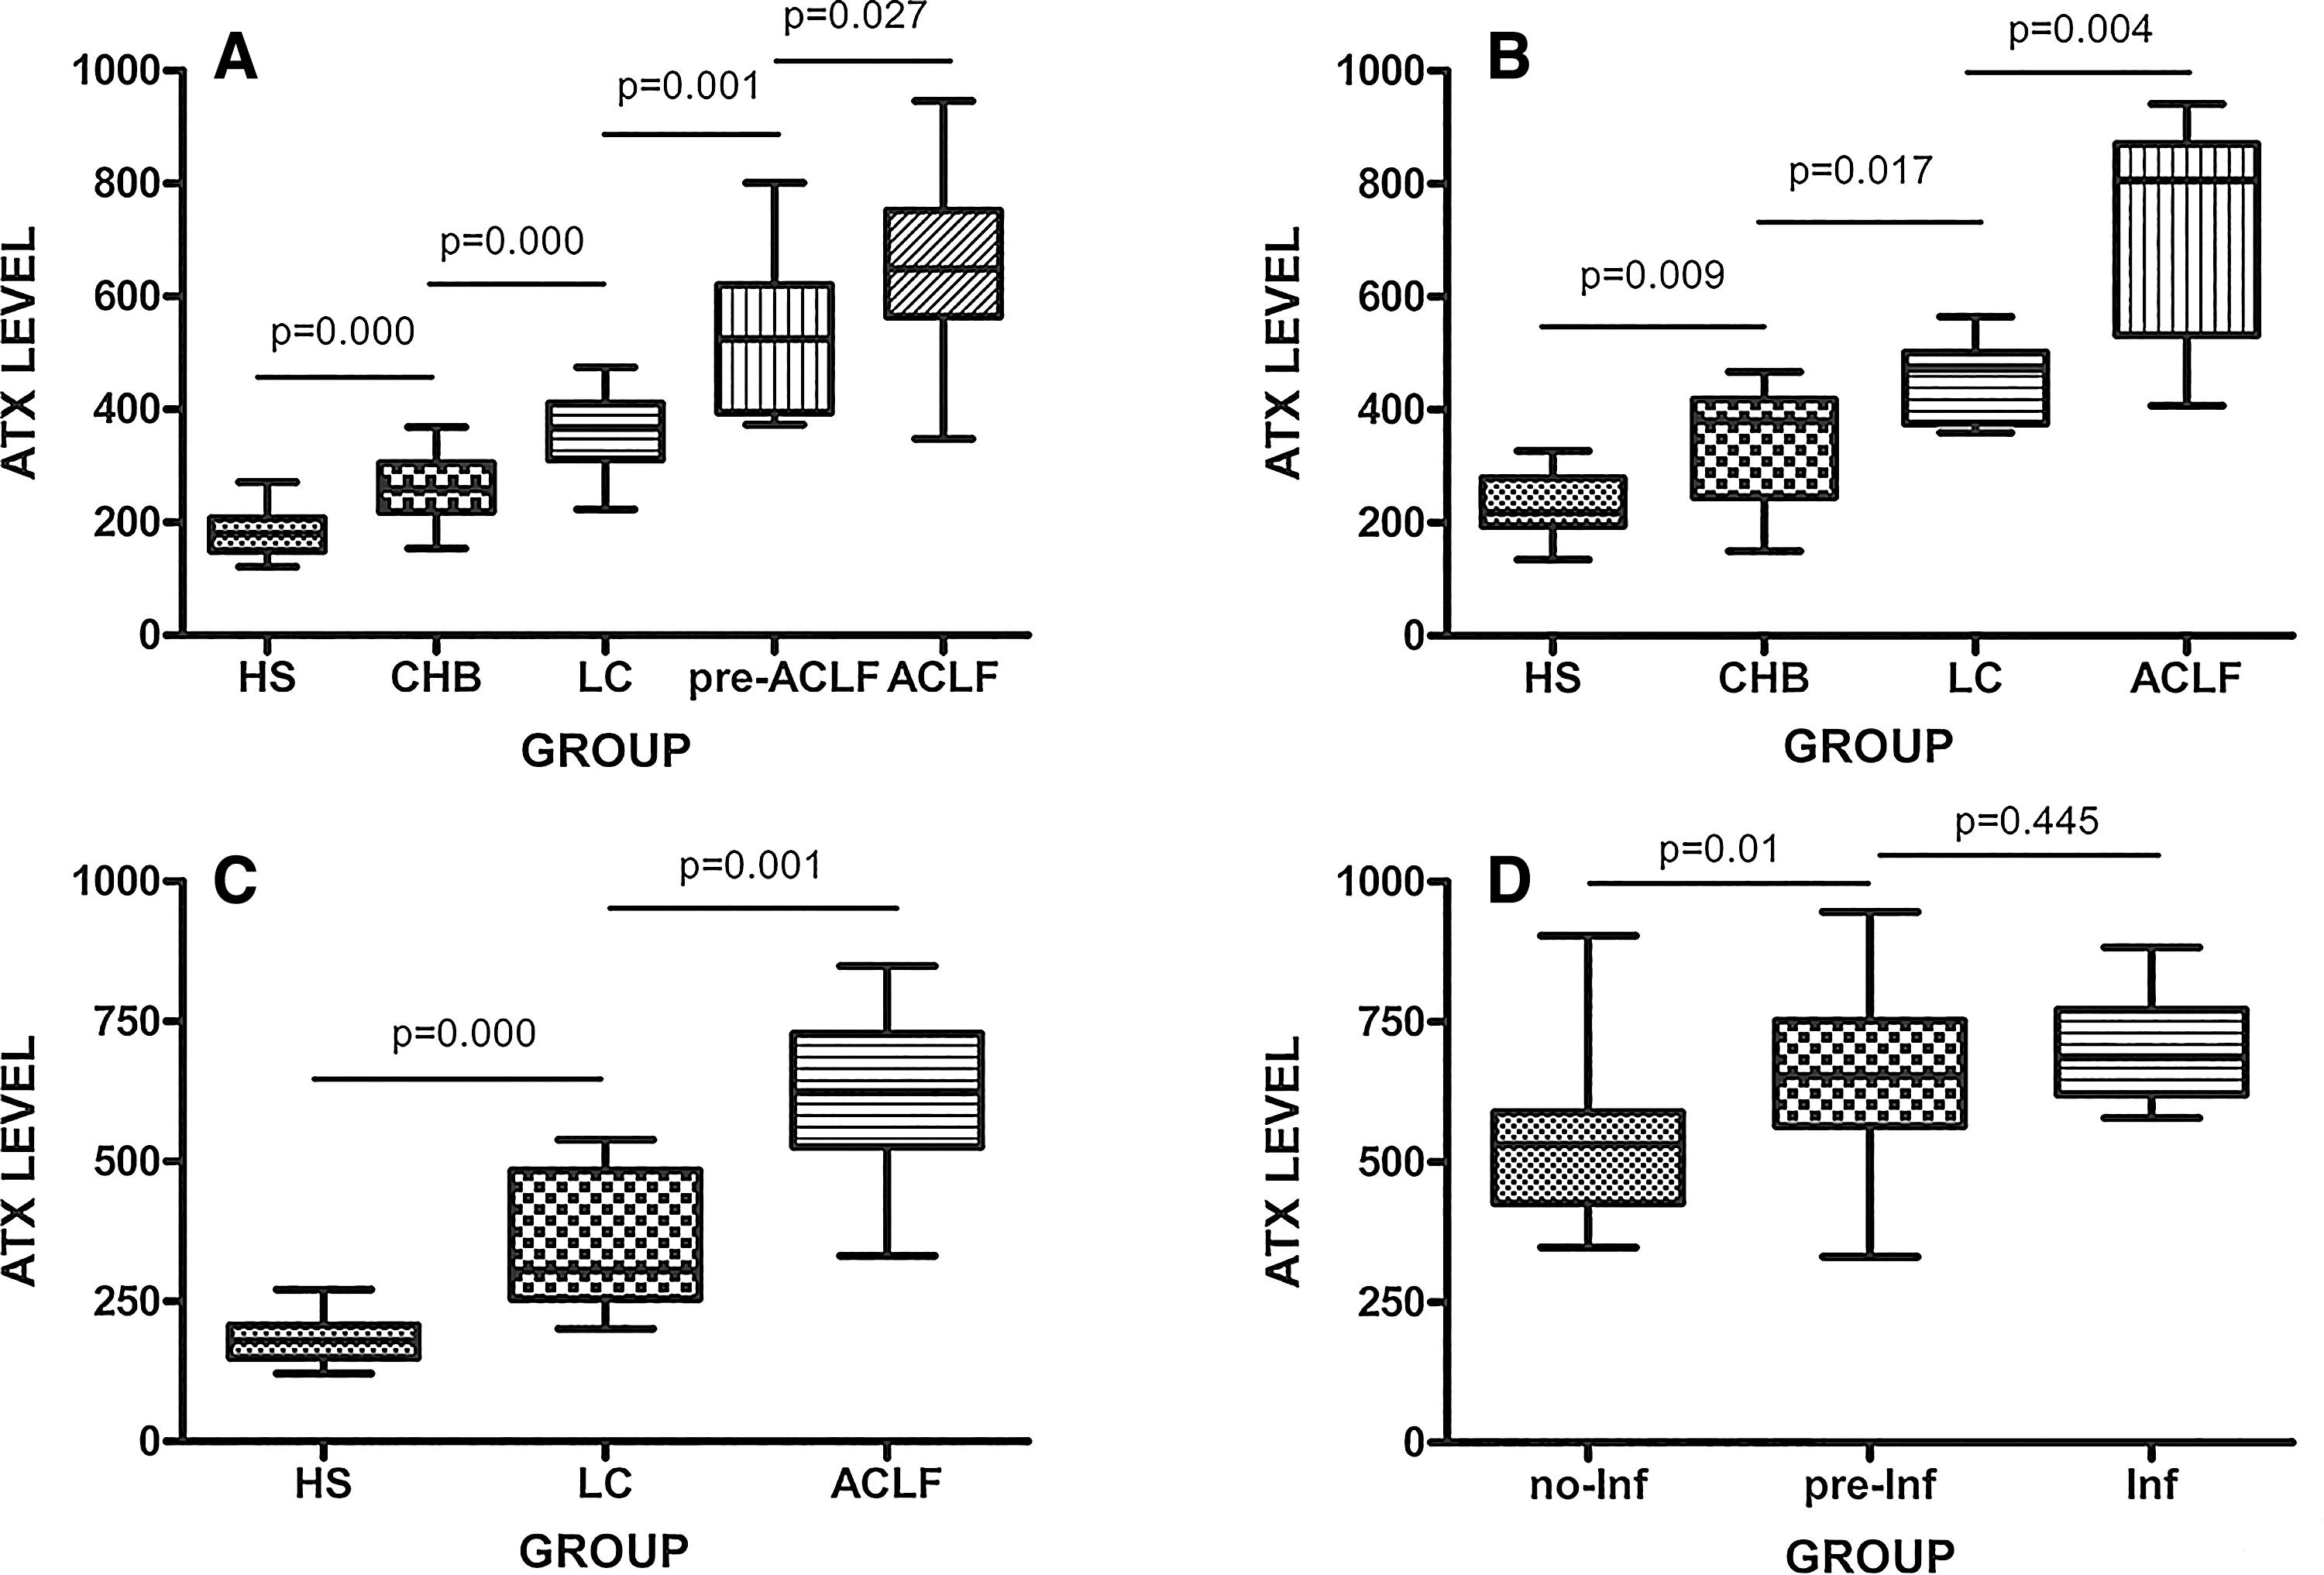 Alterations of serum ATX levels in patients with liver disease.